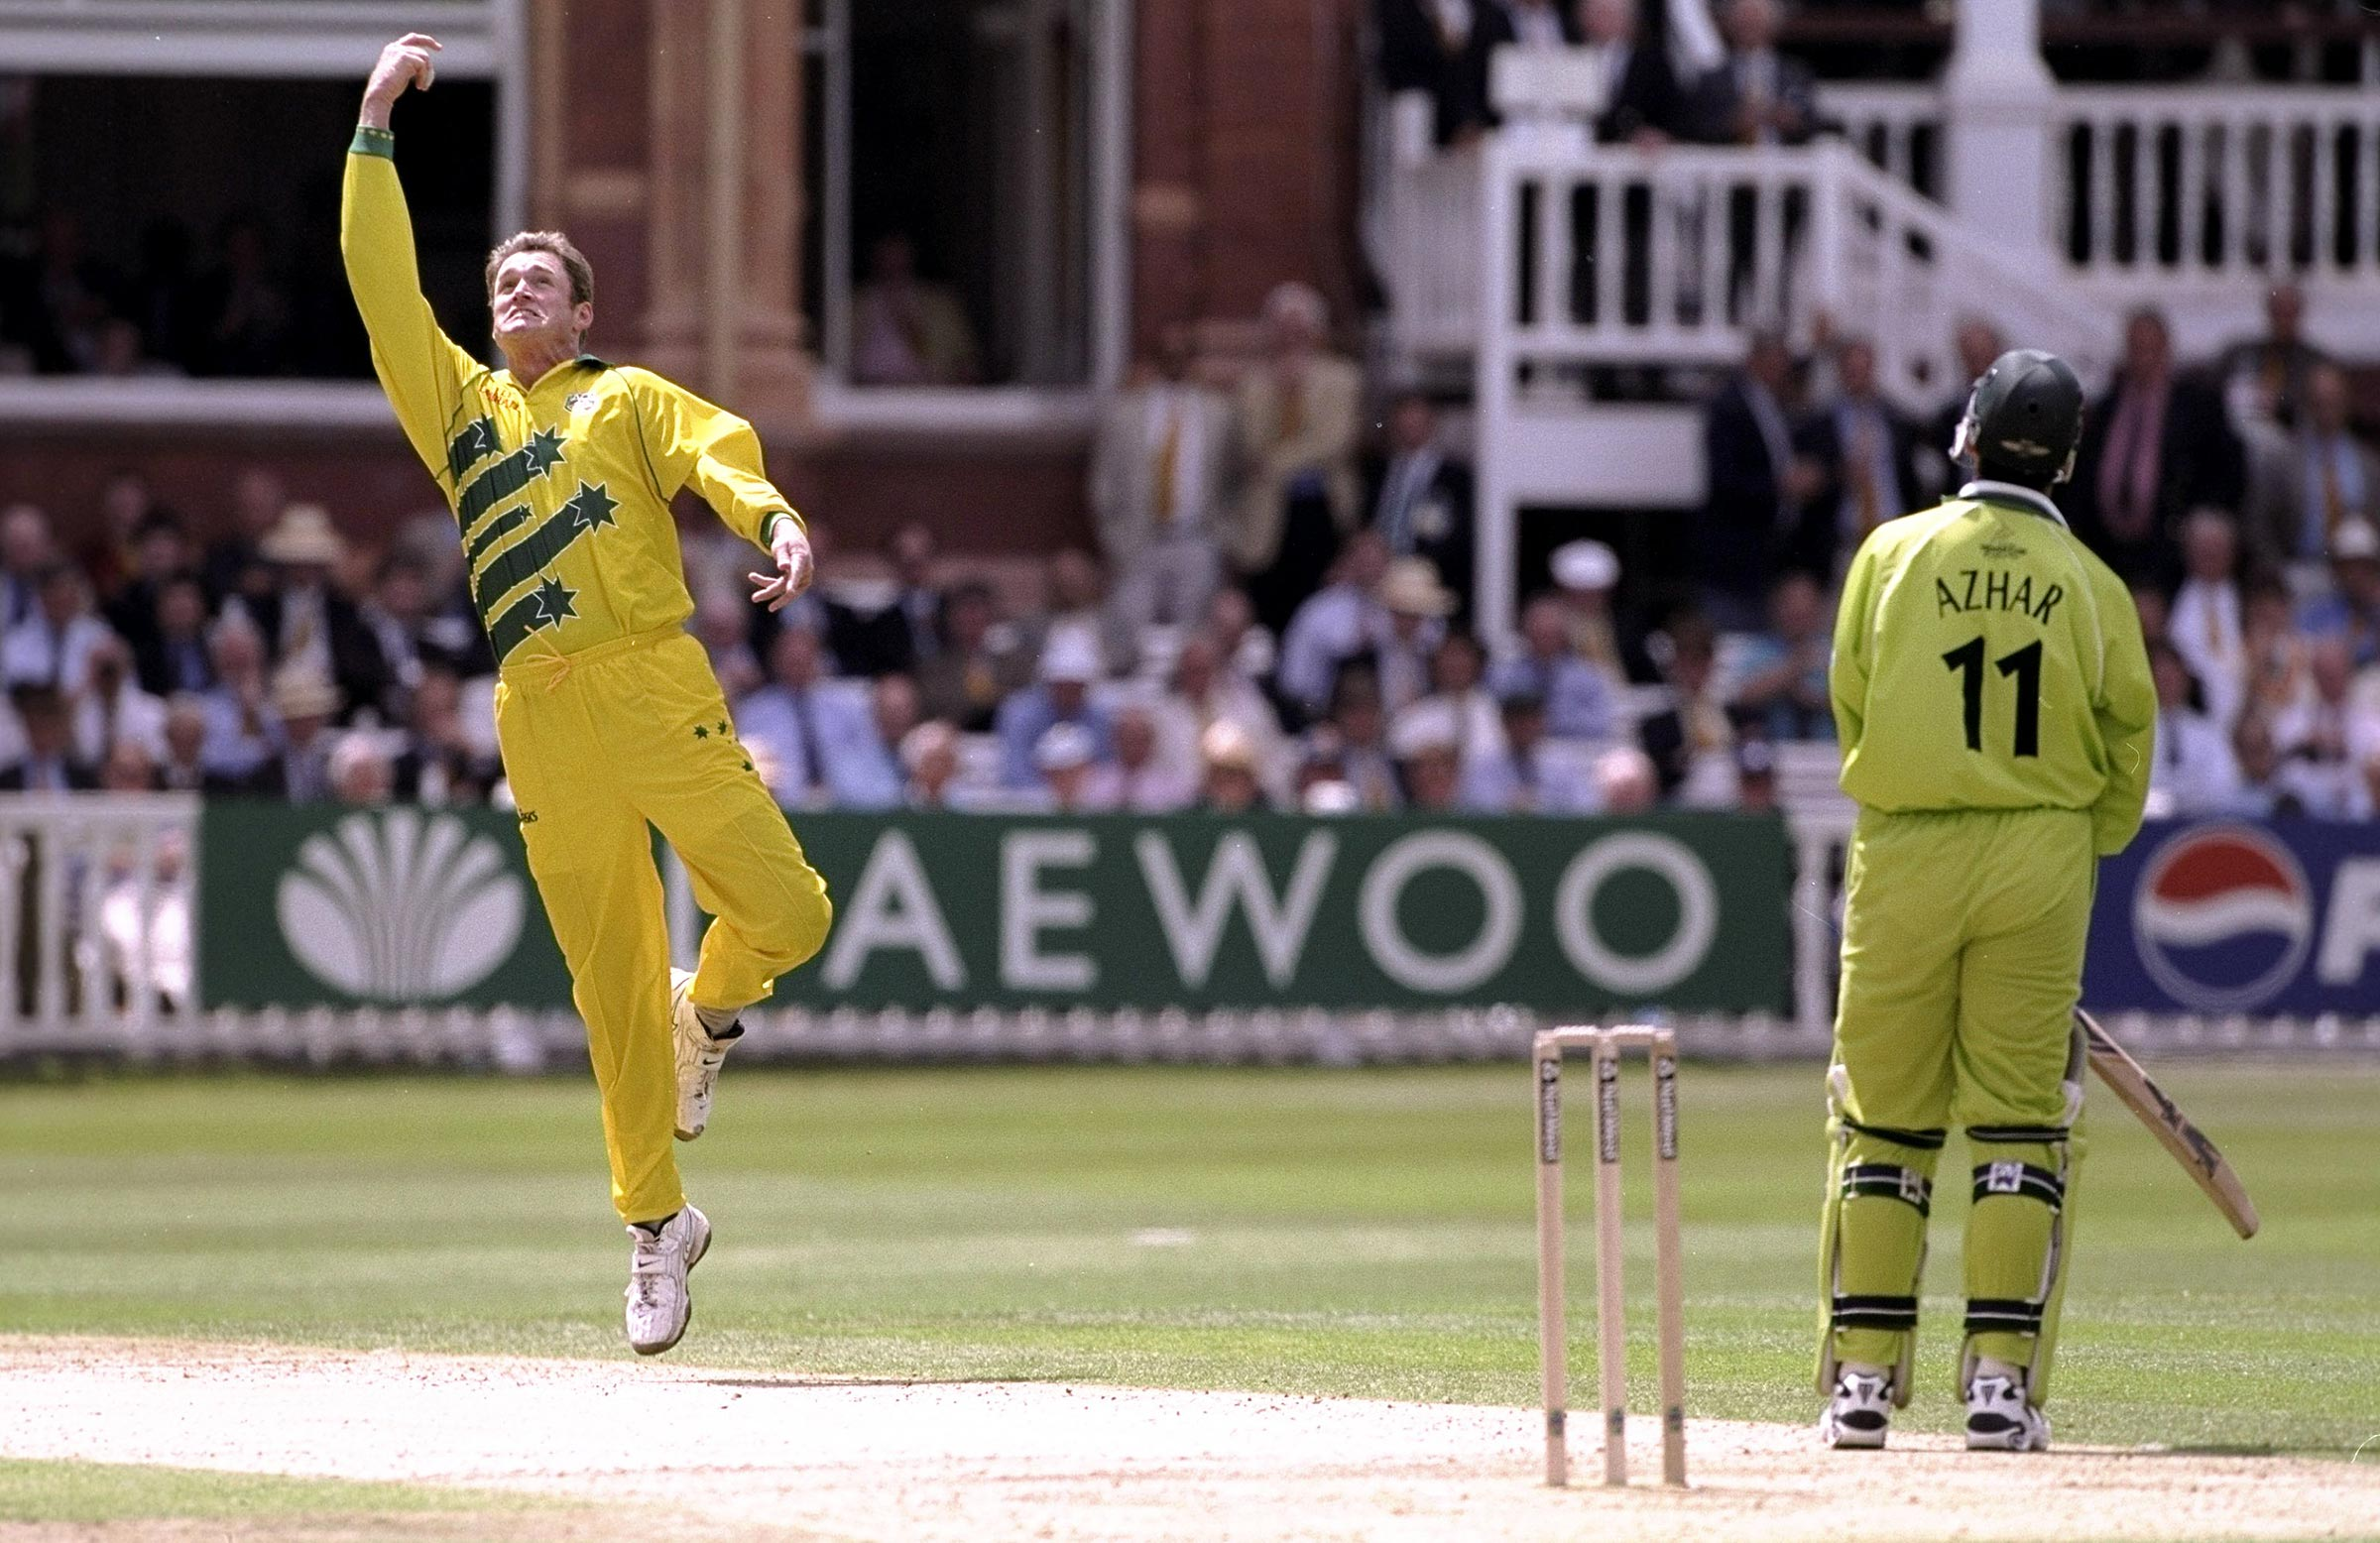 Tom Moody celebrates a catch at Lord's // Getty